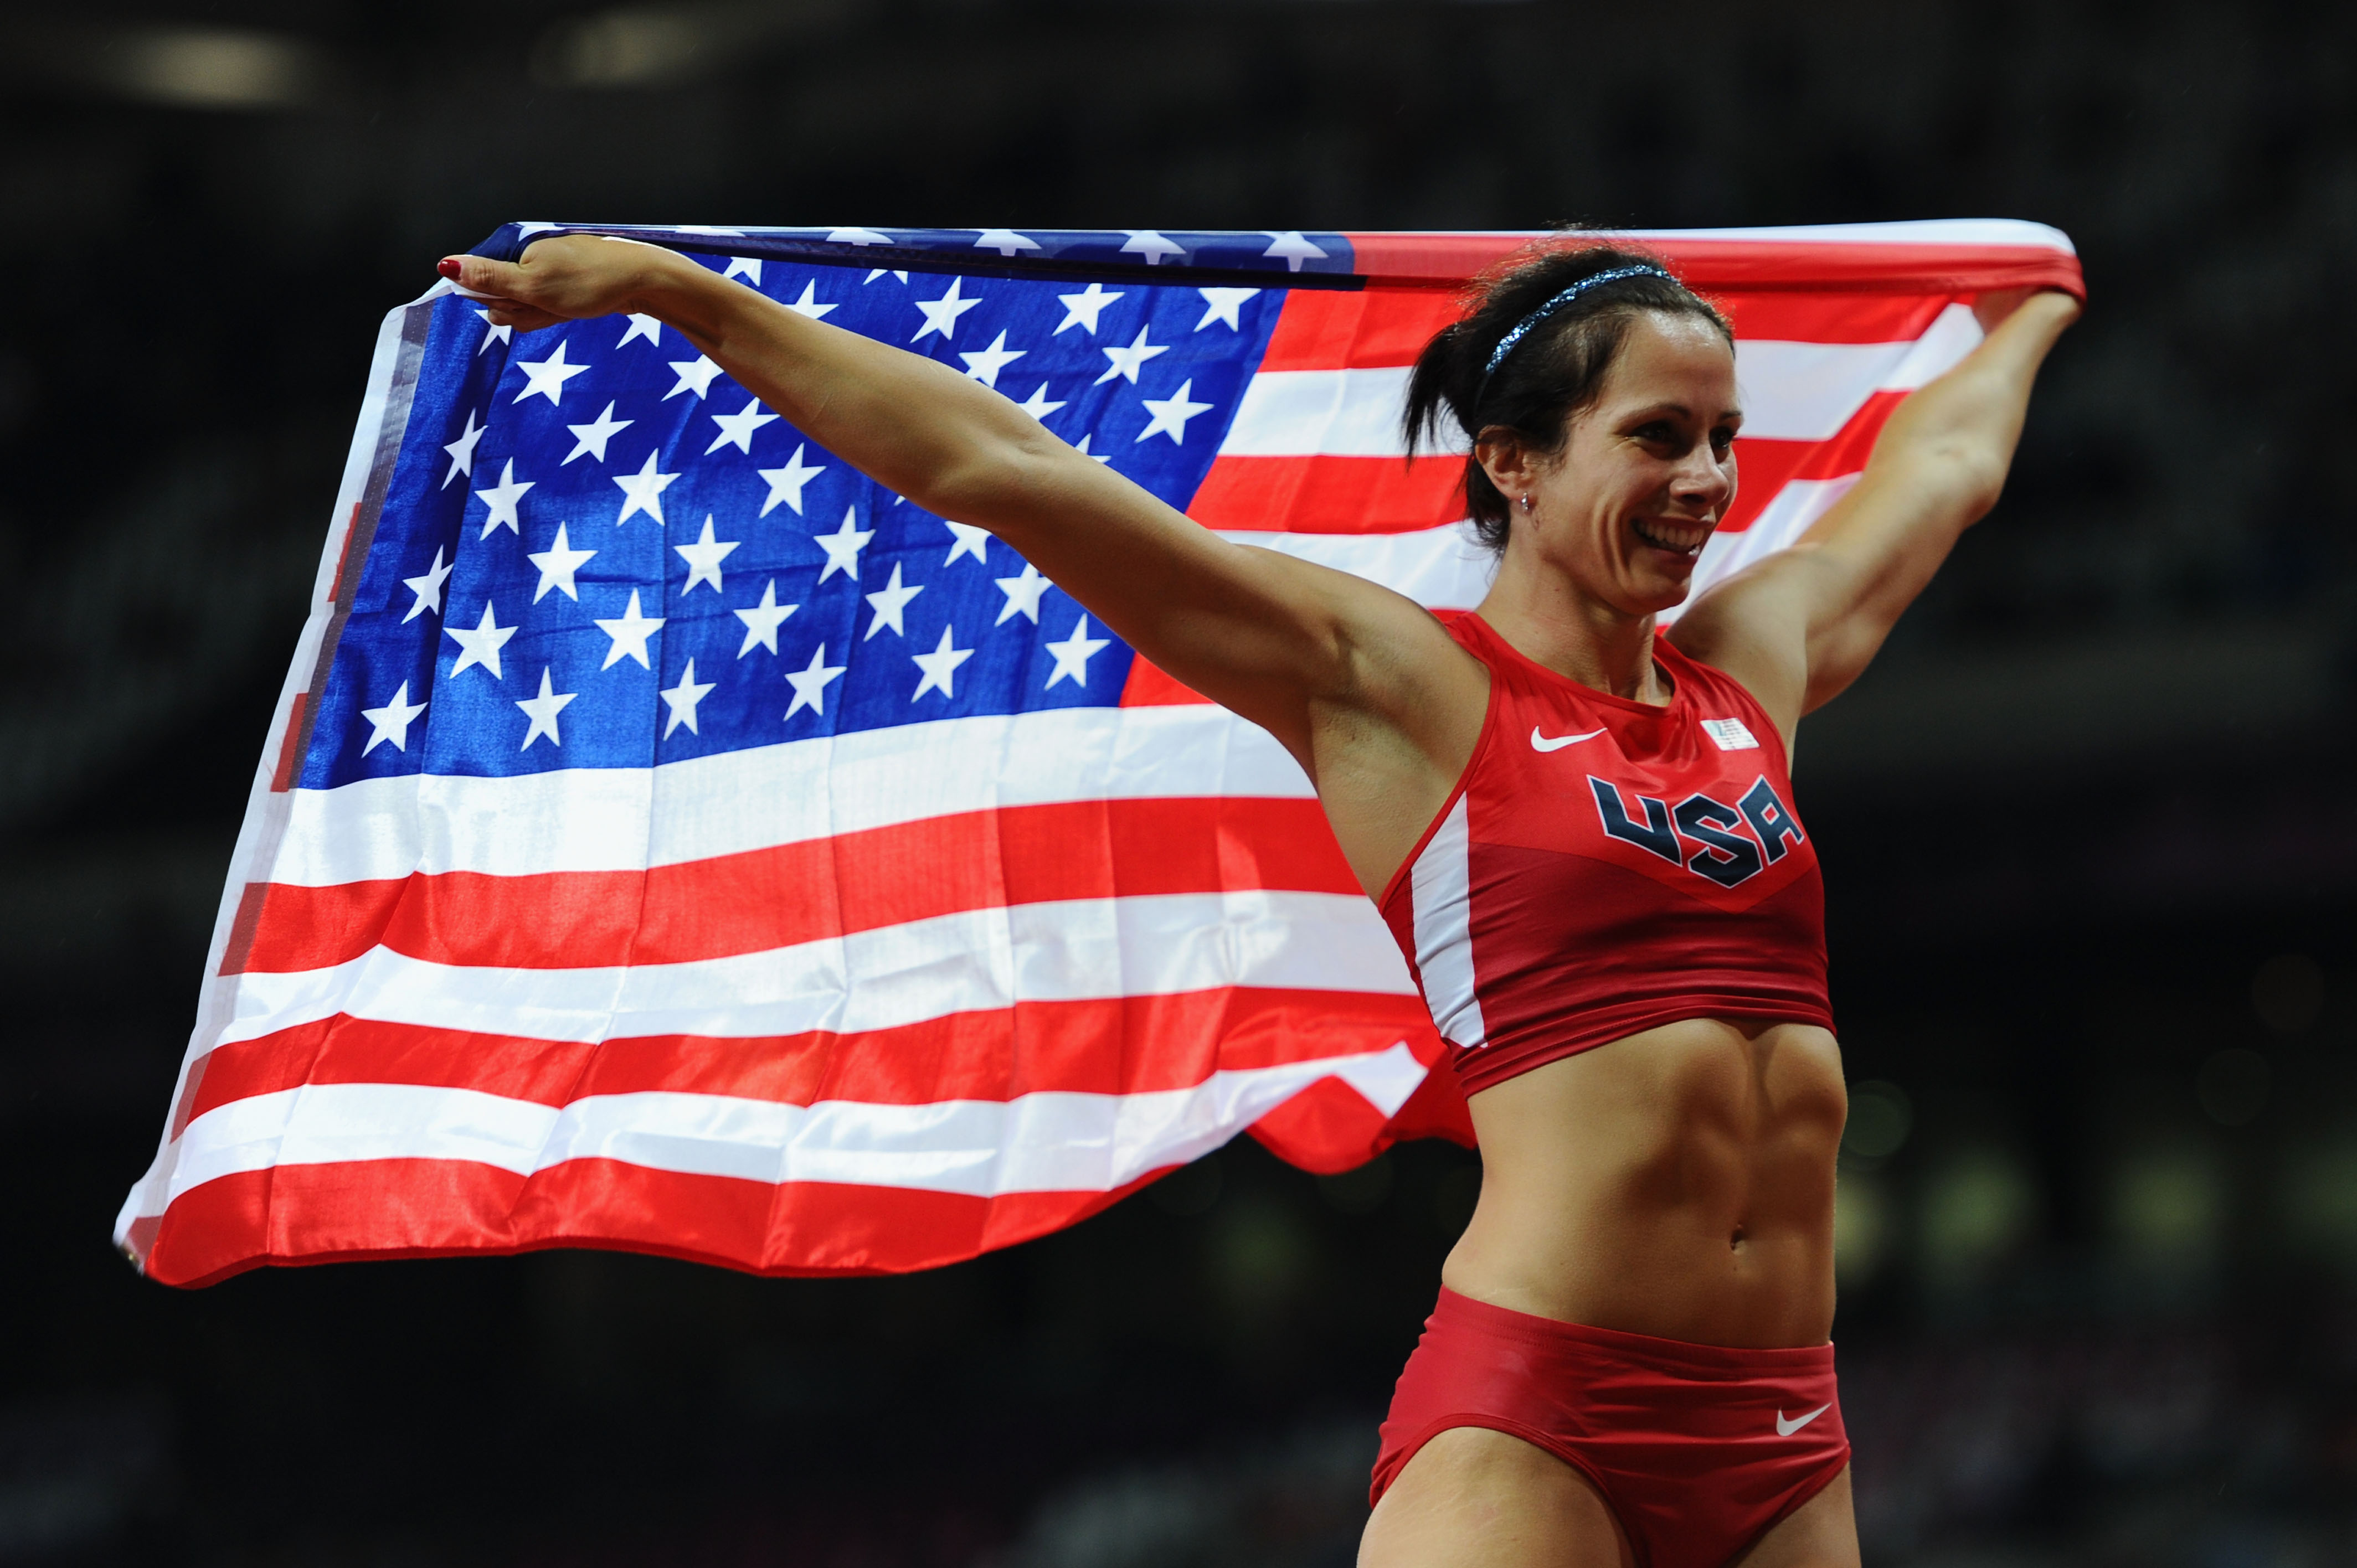 Jenn Suhr celebrates after winning the gold medal at the London 2012 Olympics. (Getty Images)